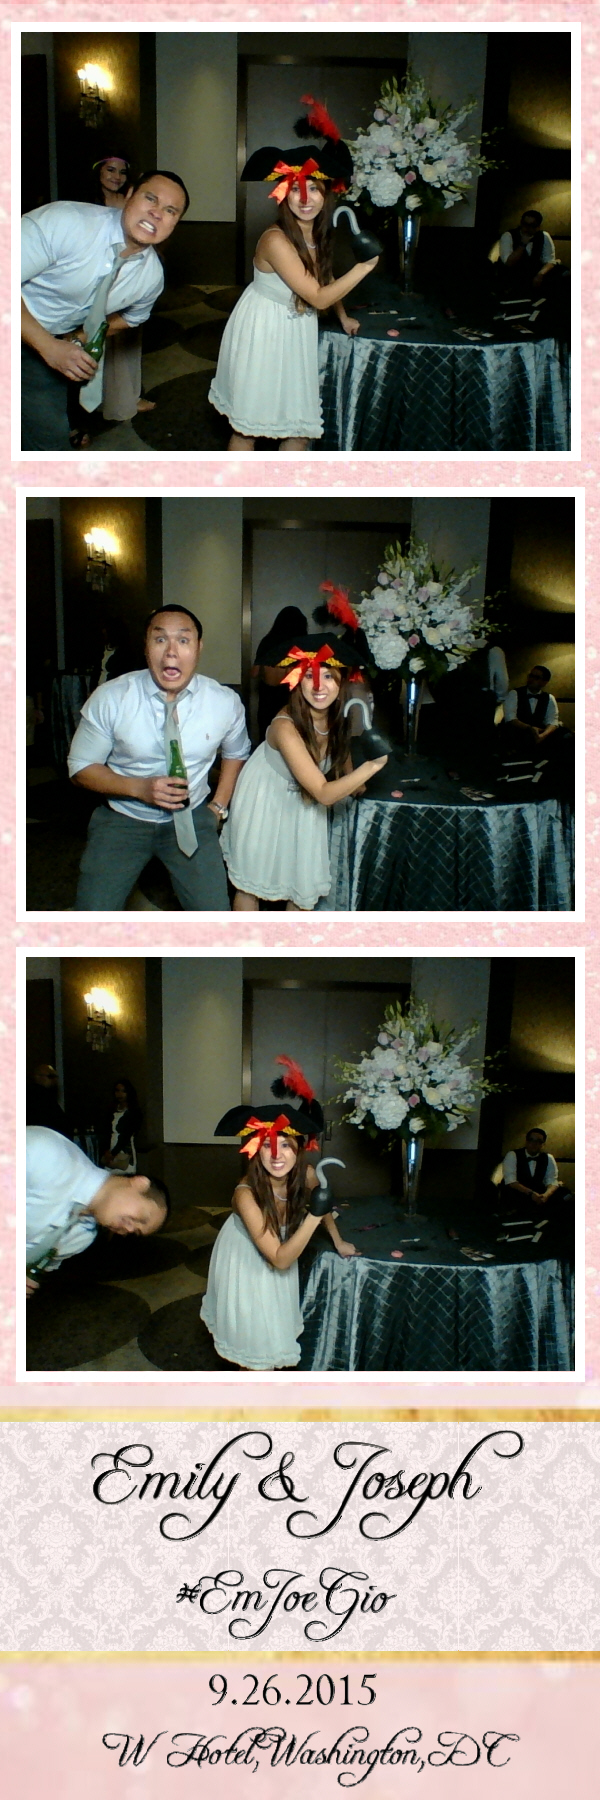 Guest House Events Photo Booth E&J (47).jpg